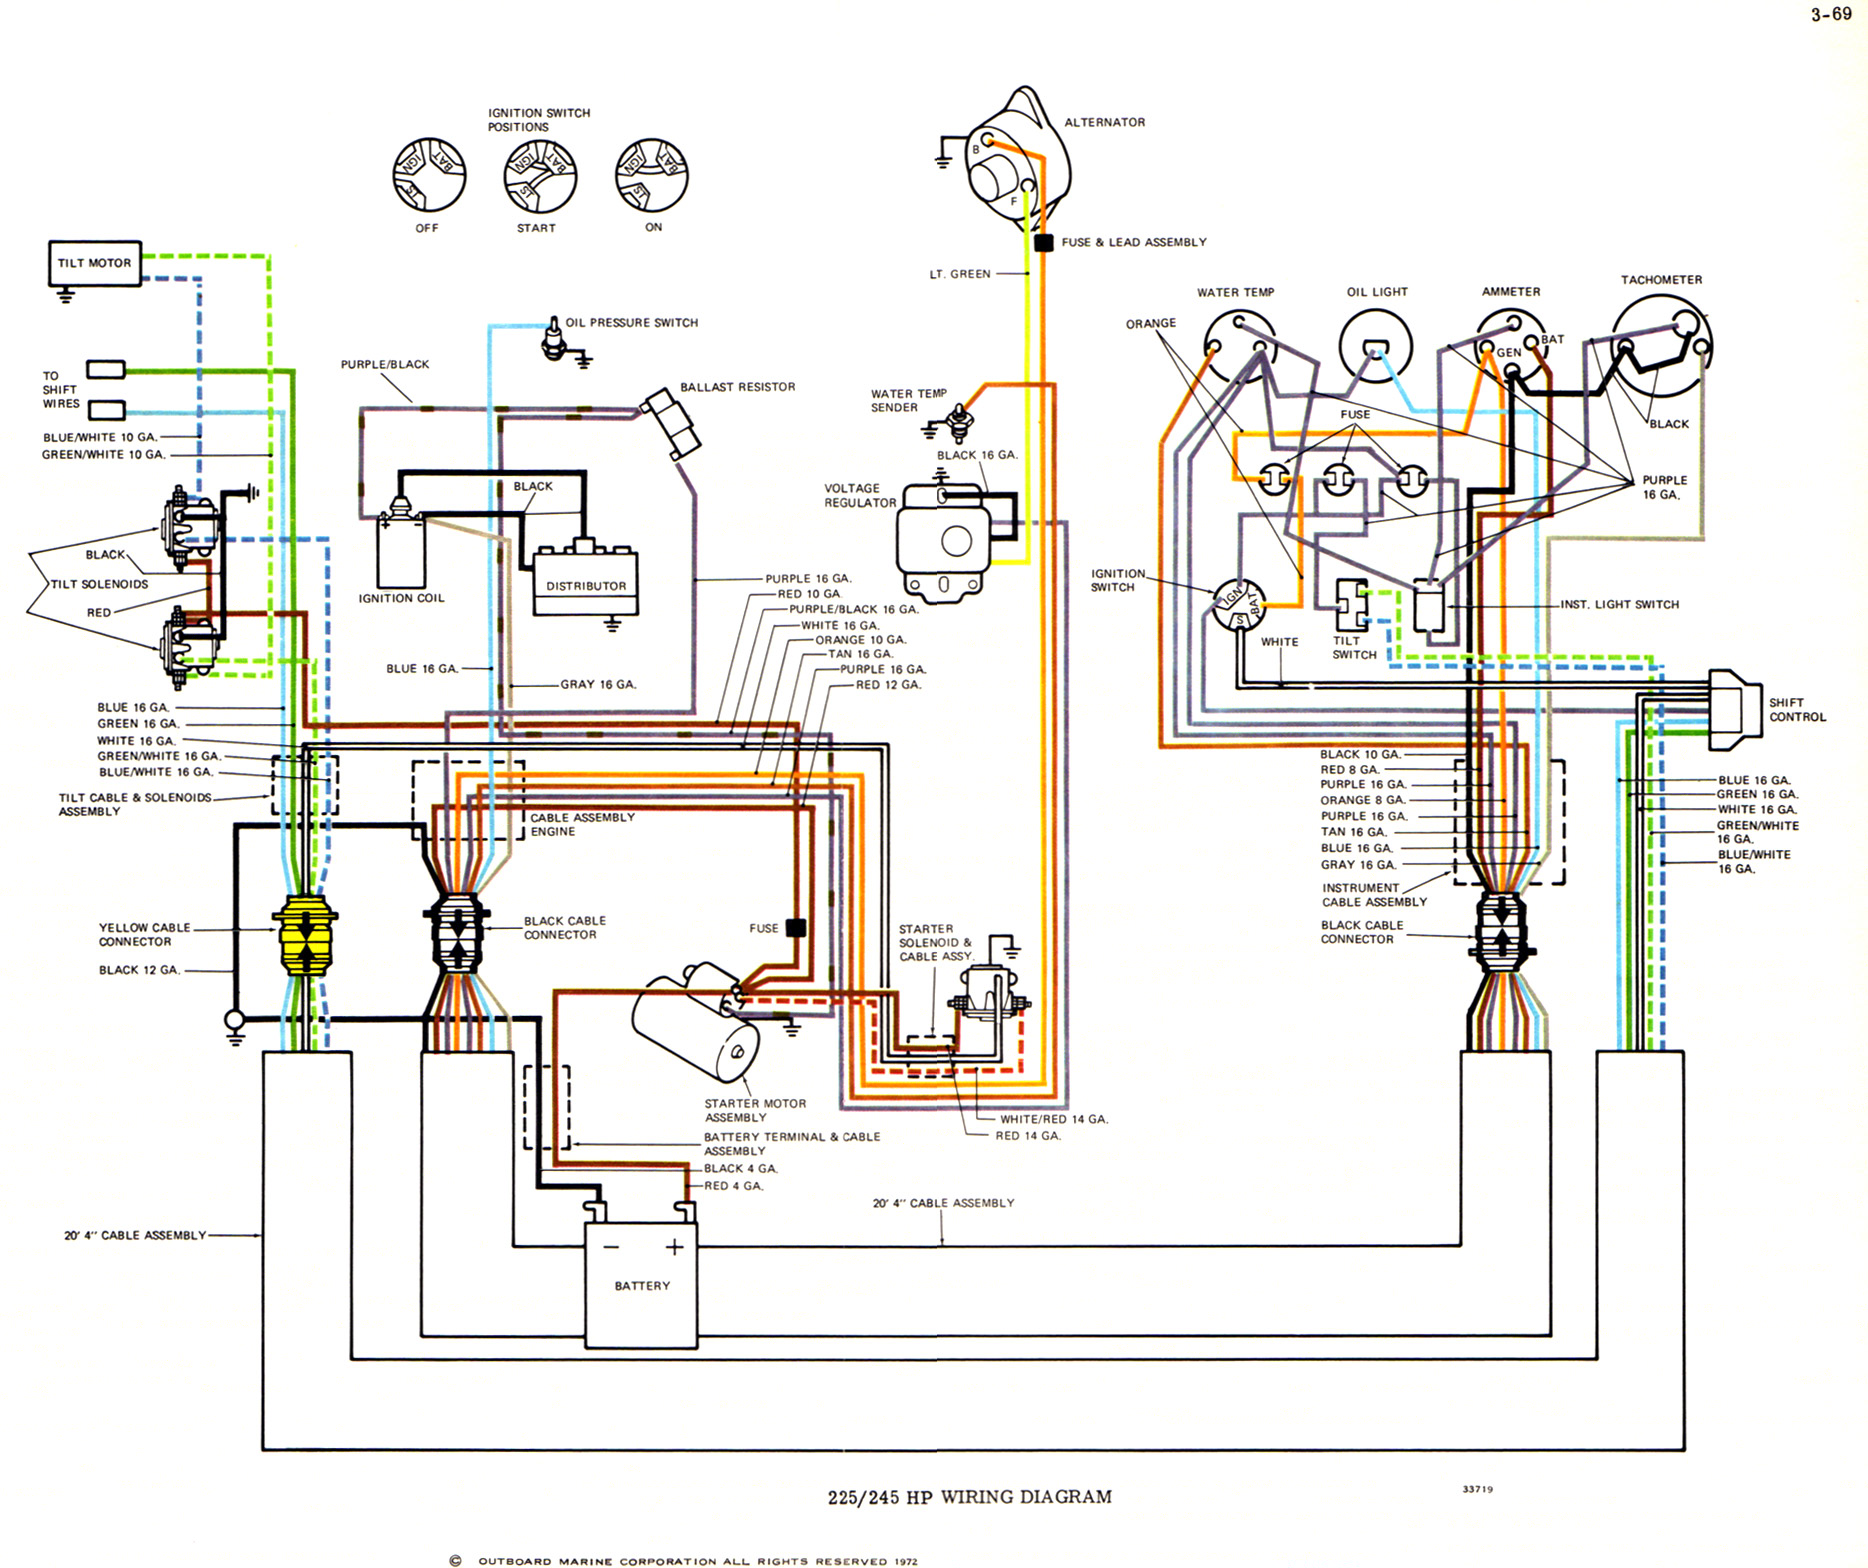 10 hp motor starter typical wiring diagram #12 Two Speed Motor Starter Wiring Dia… 10 hp motor starter typical wiring diagram